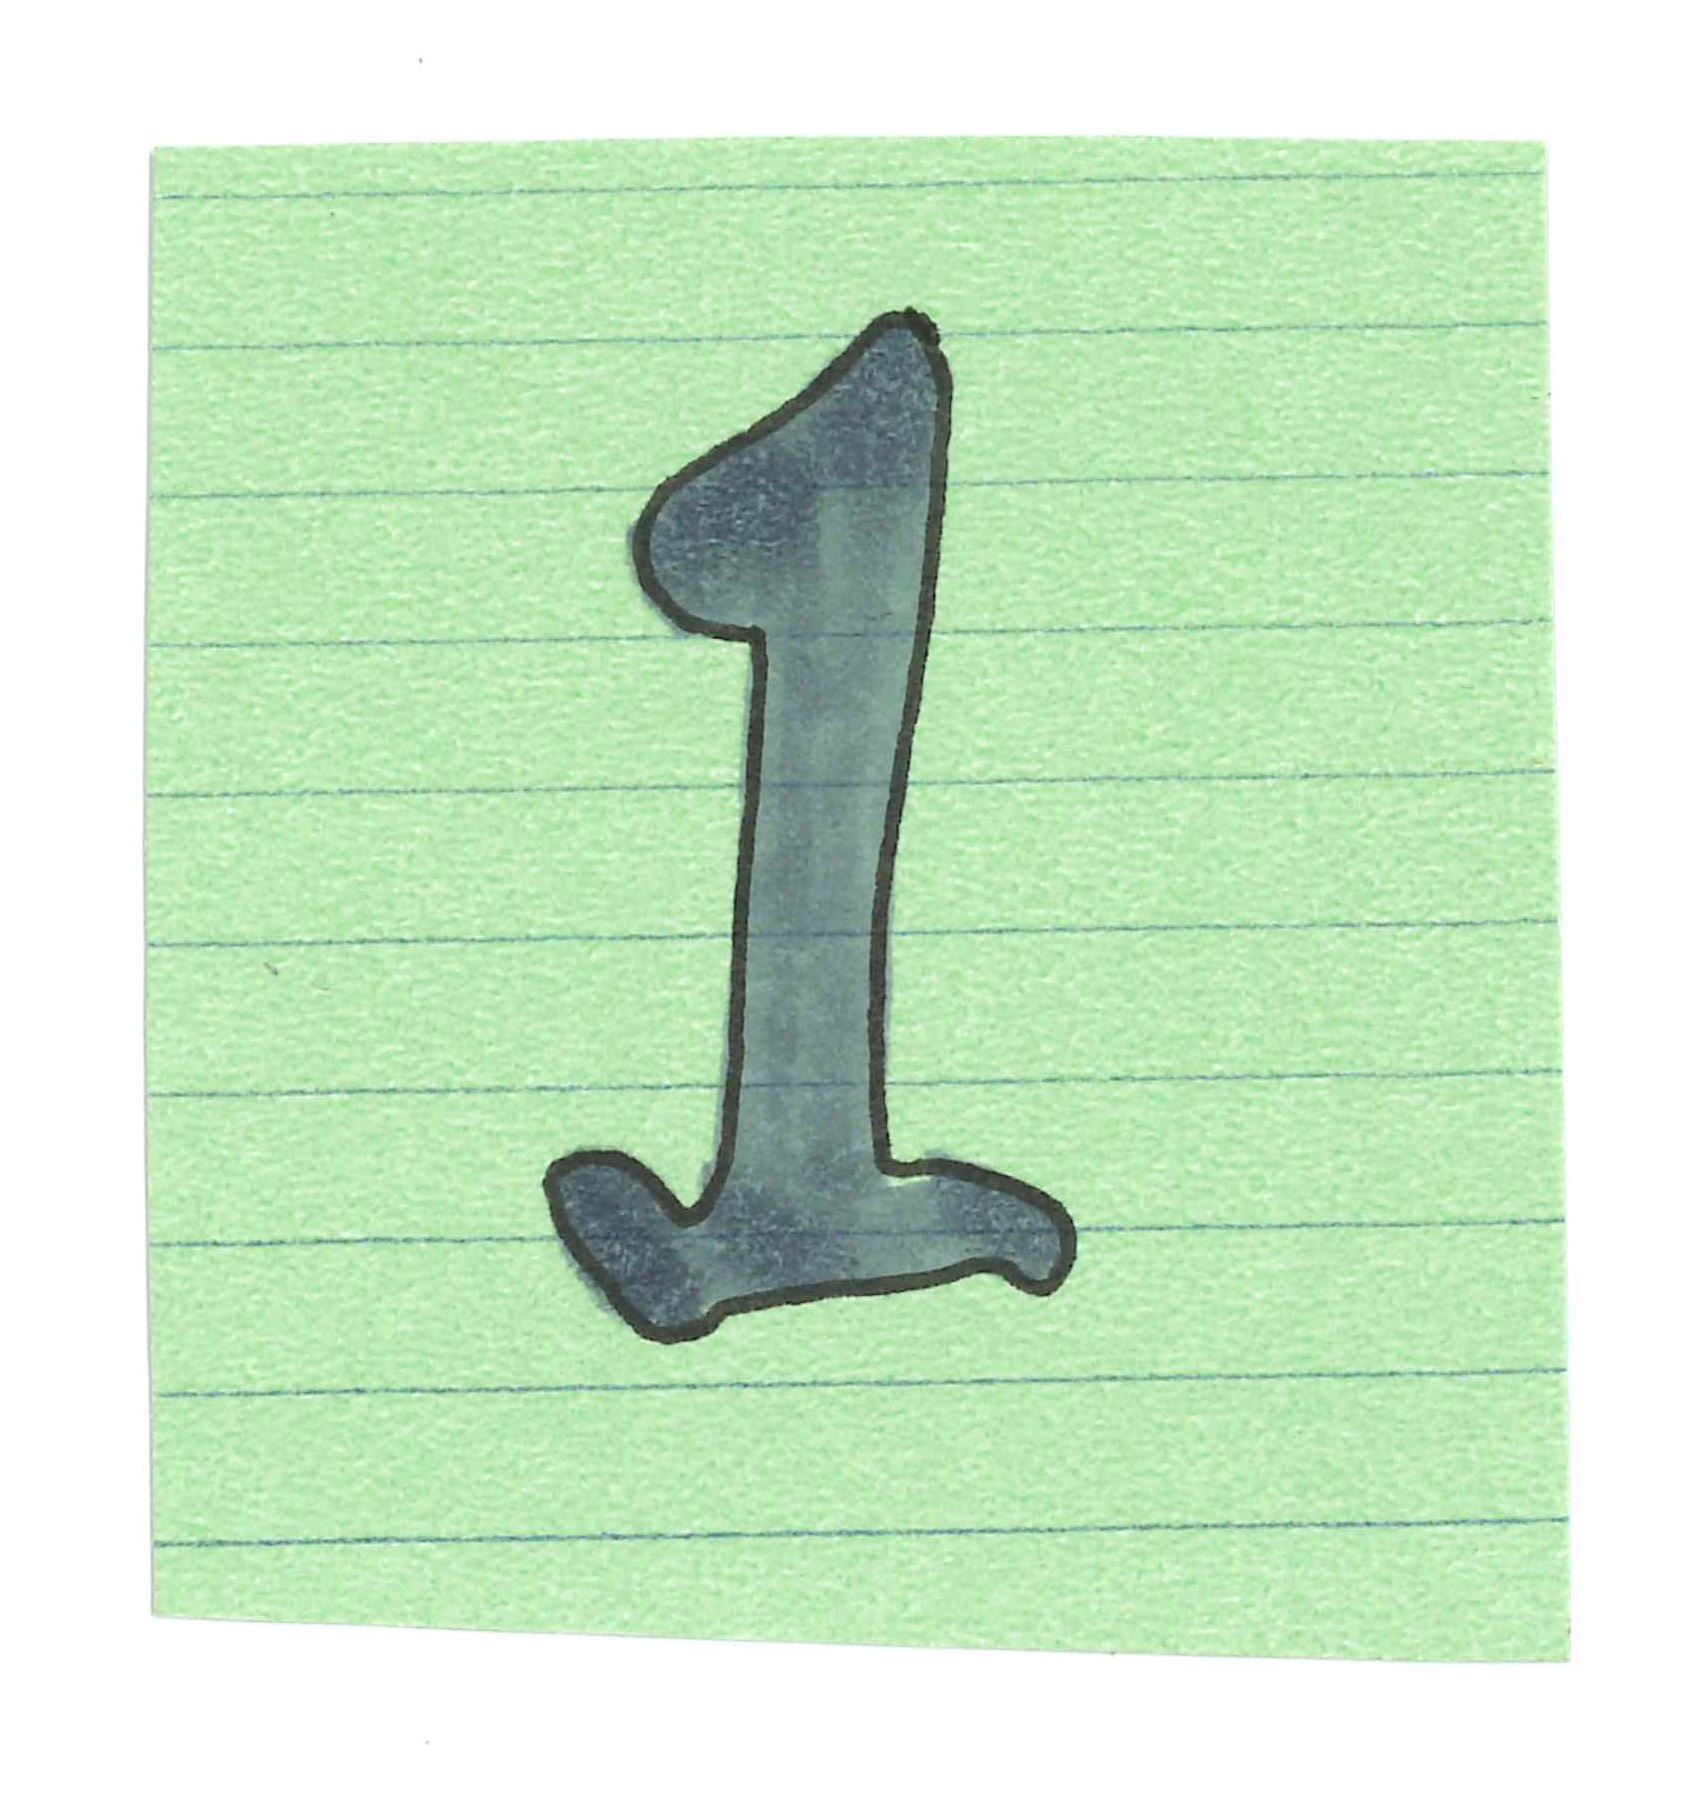 The Number 1, Handwritten on a Green Index Card